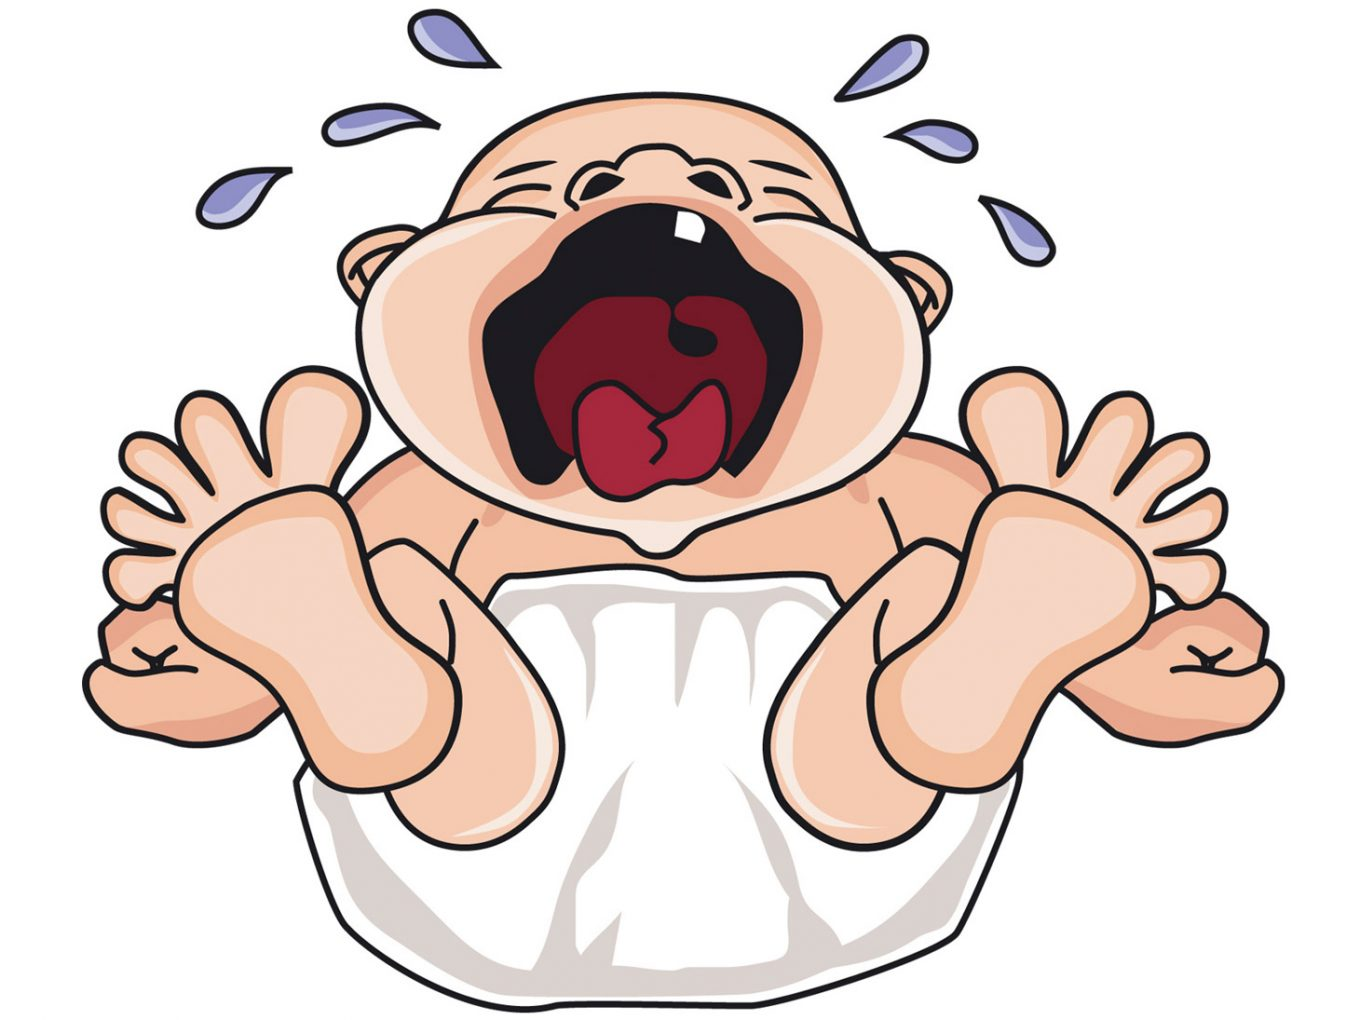 crying cartoon baby | yumsome.com